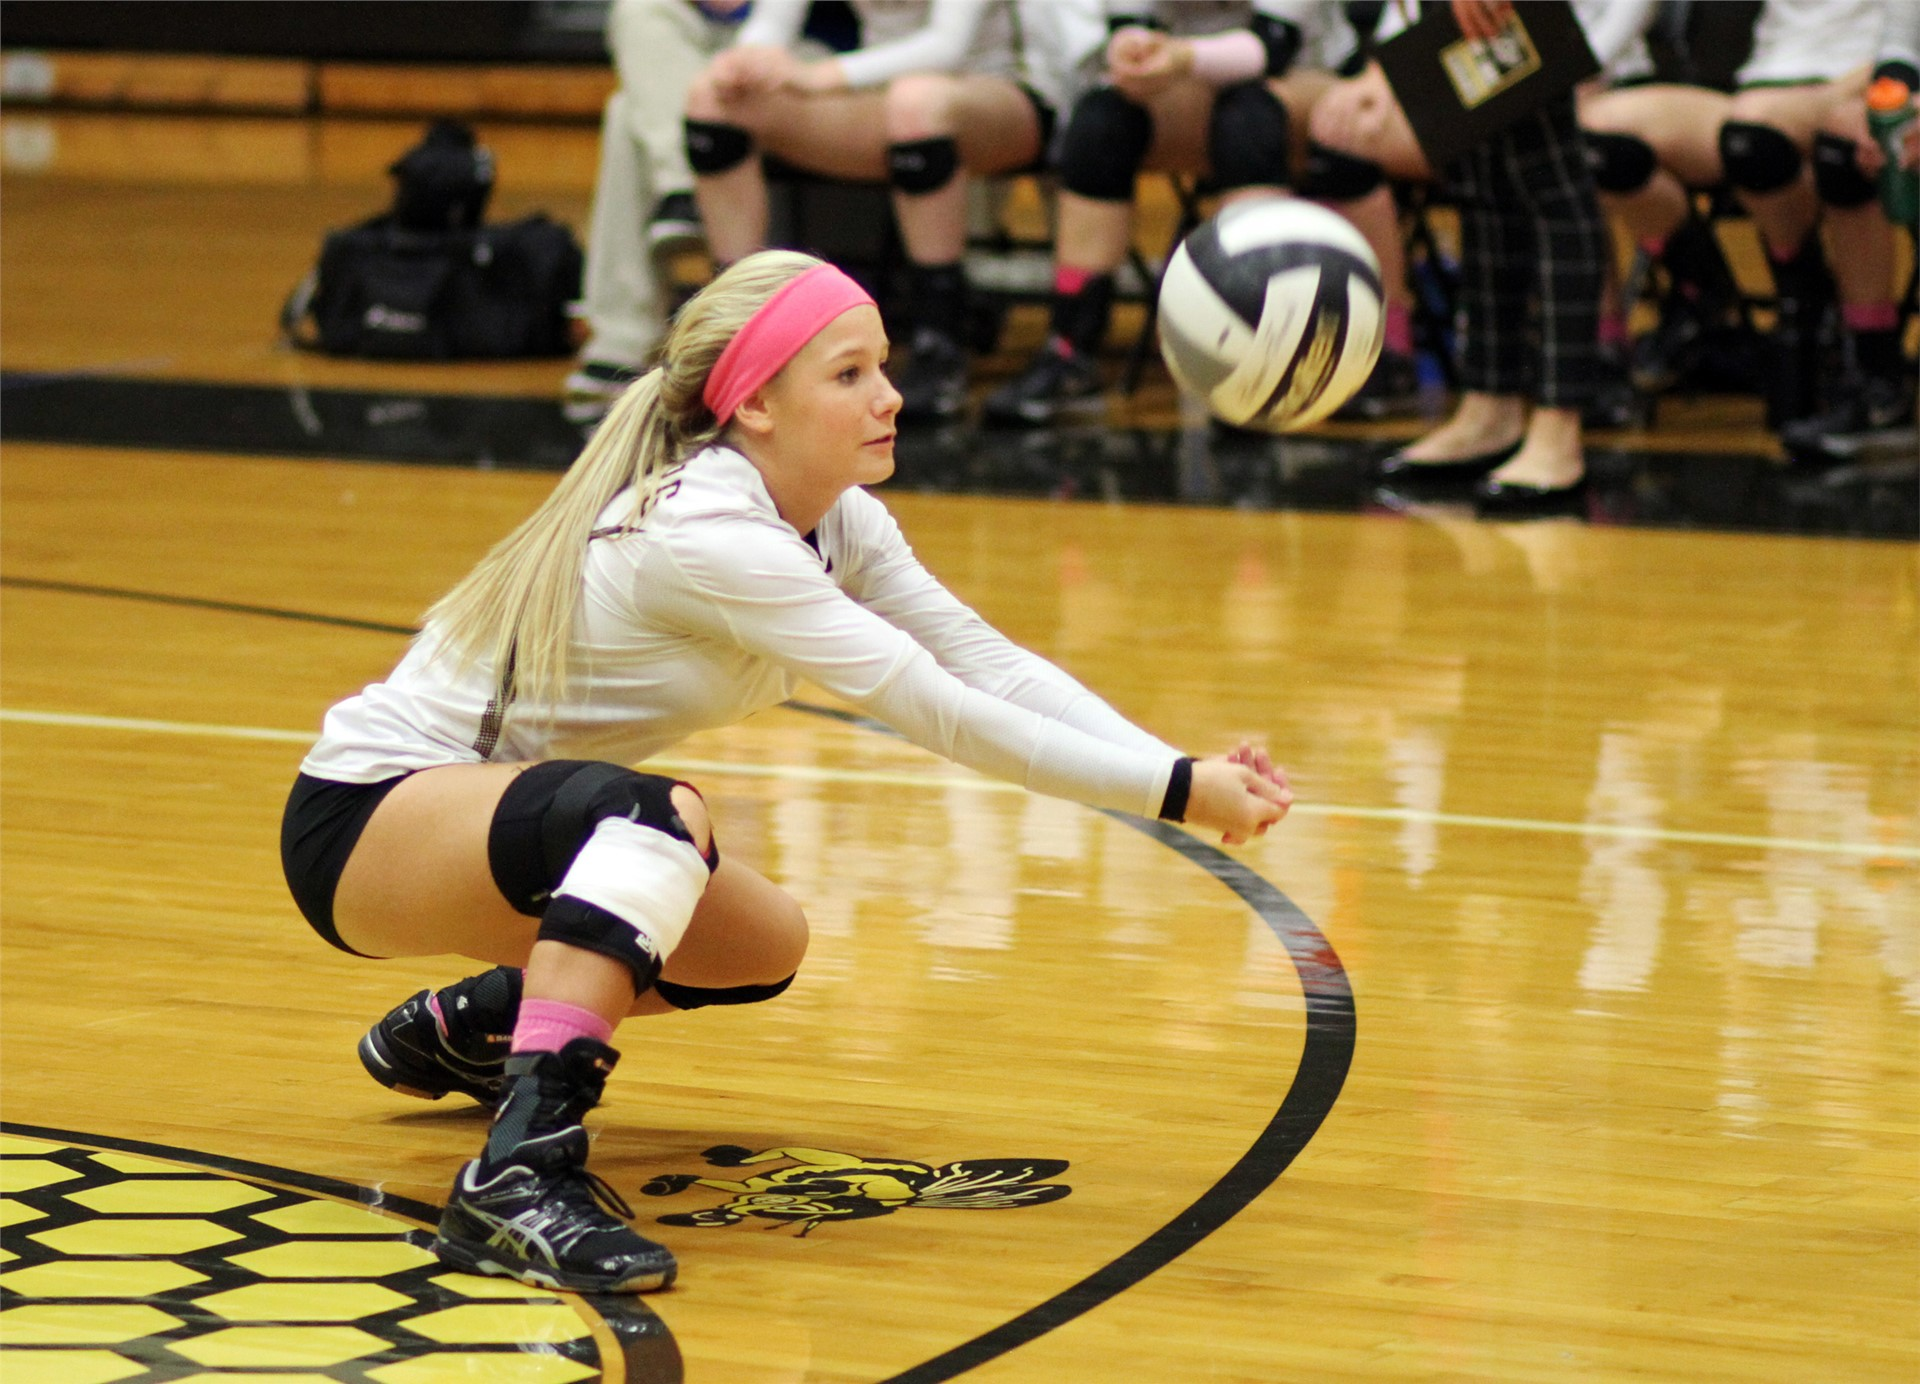 PHS volleyball players attempting to bump a ball